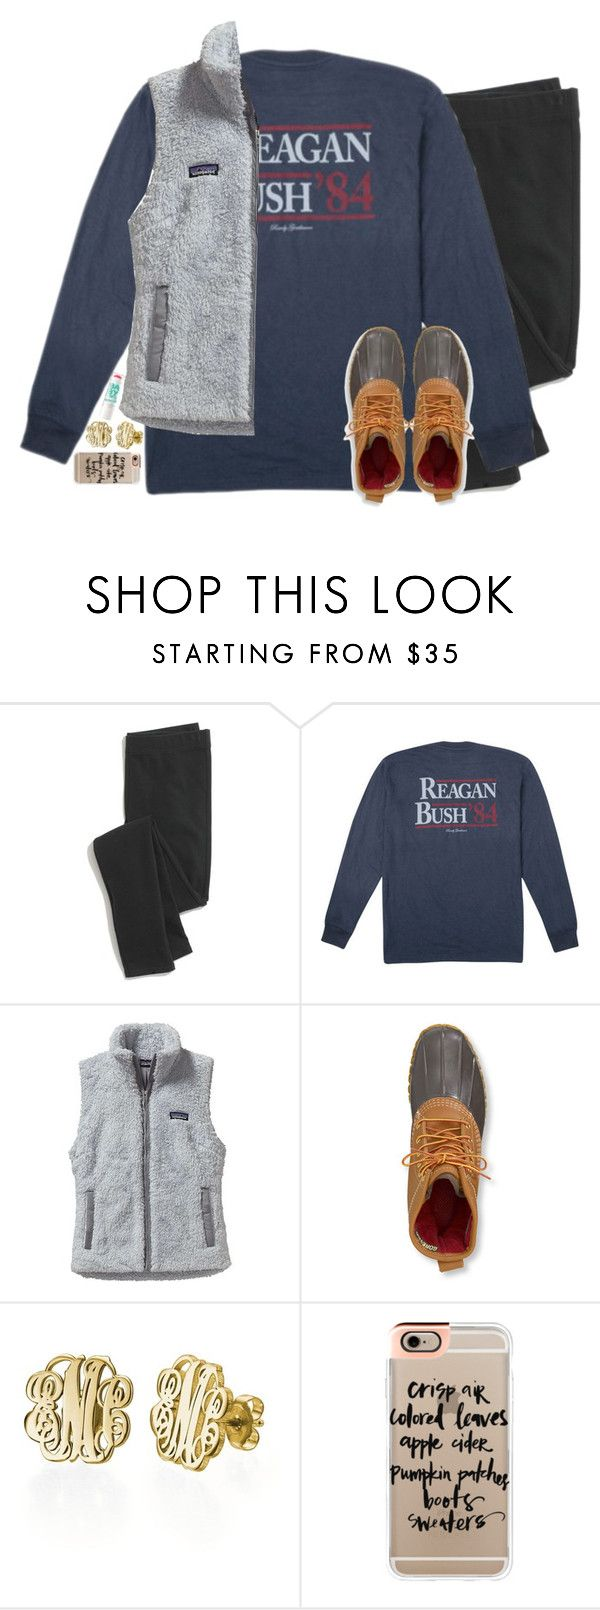 """Reagan Bush' 84"" by emmig02 ❤ liked on Polyvore featuring Madewell, Patagonia, L.L.Bean, My Name Necklace, Maybelline and Casetify"